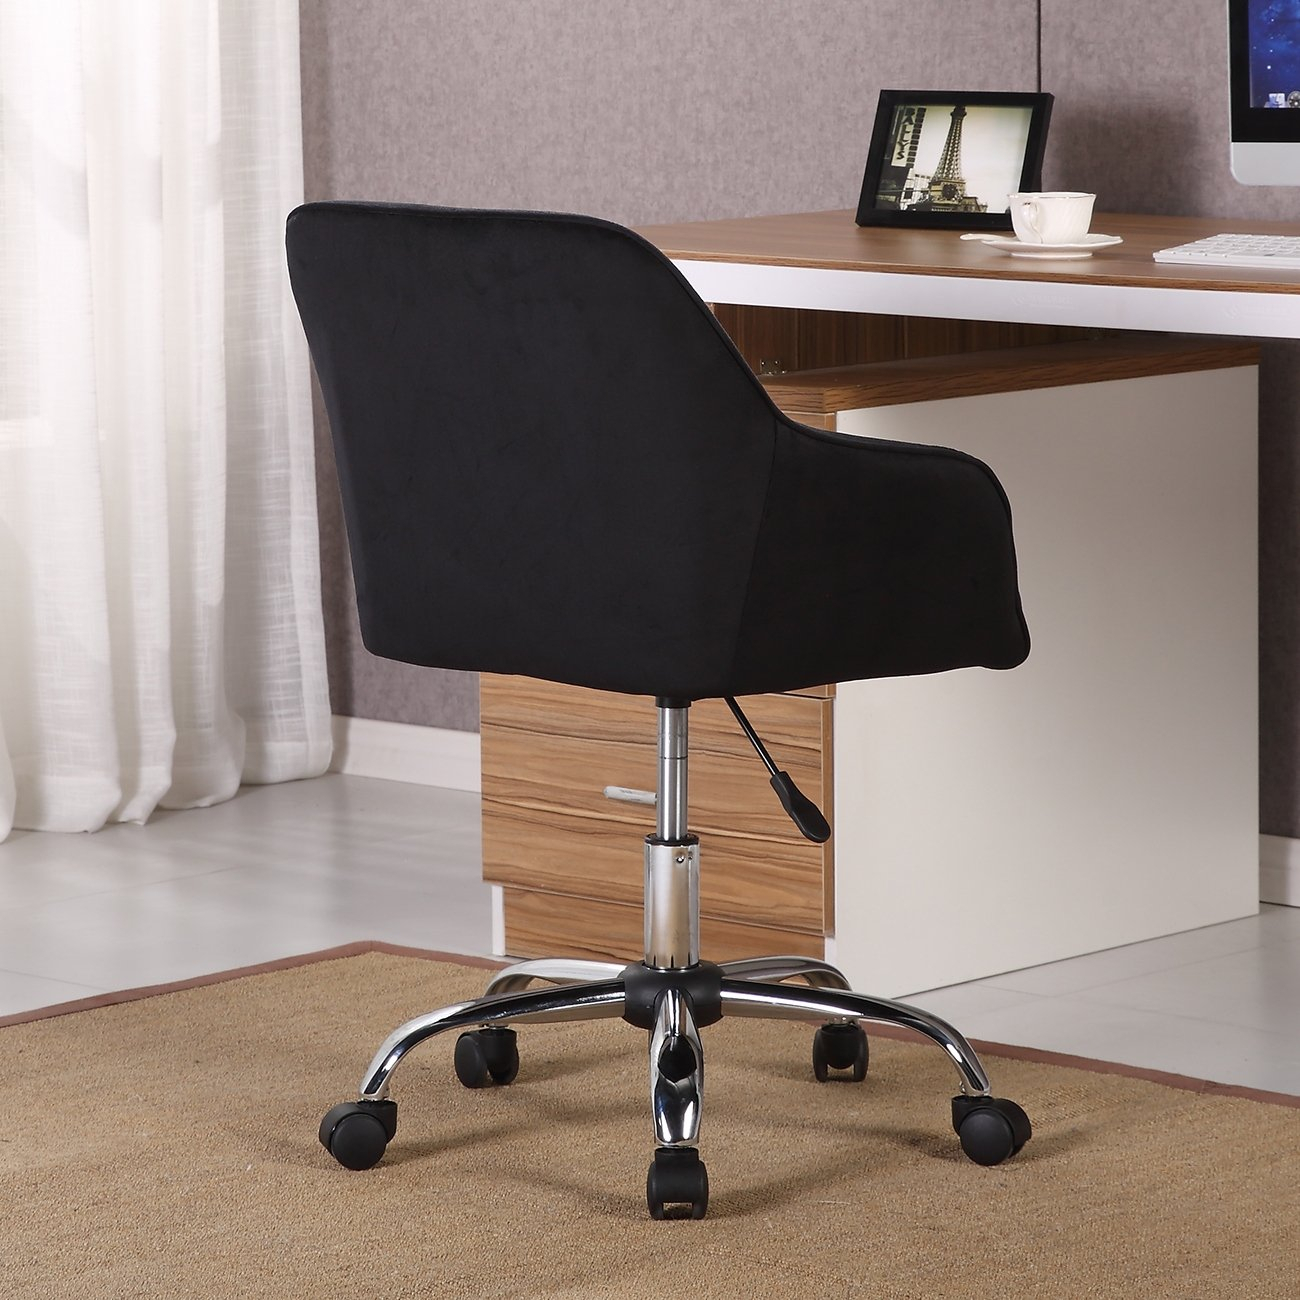 Shop Belleze Modern Office Chair Task Desk Adjustable Swivel Height Inside Katrina Blue Swivel Glider Chairs (Image 16 of 20)